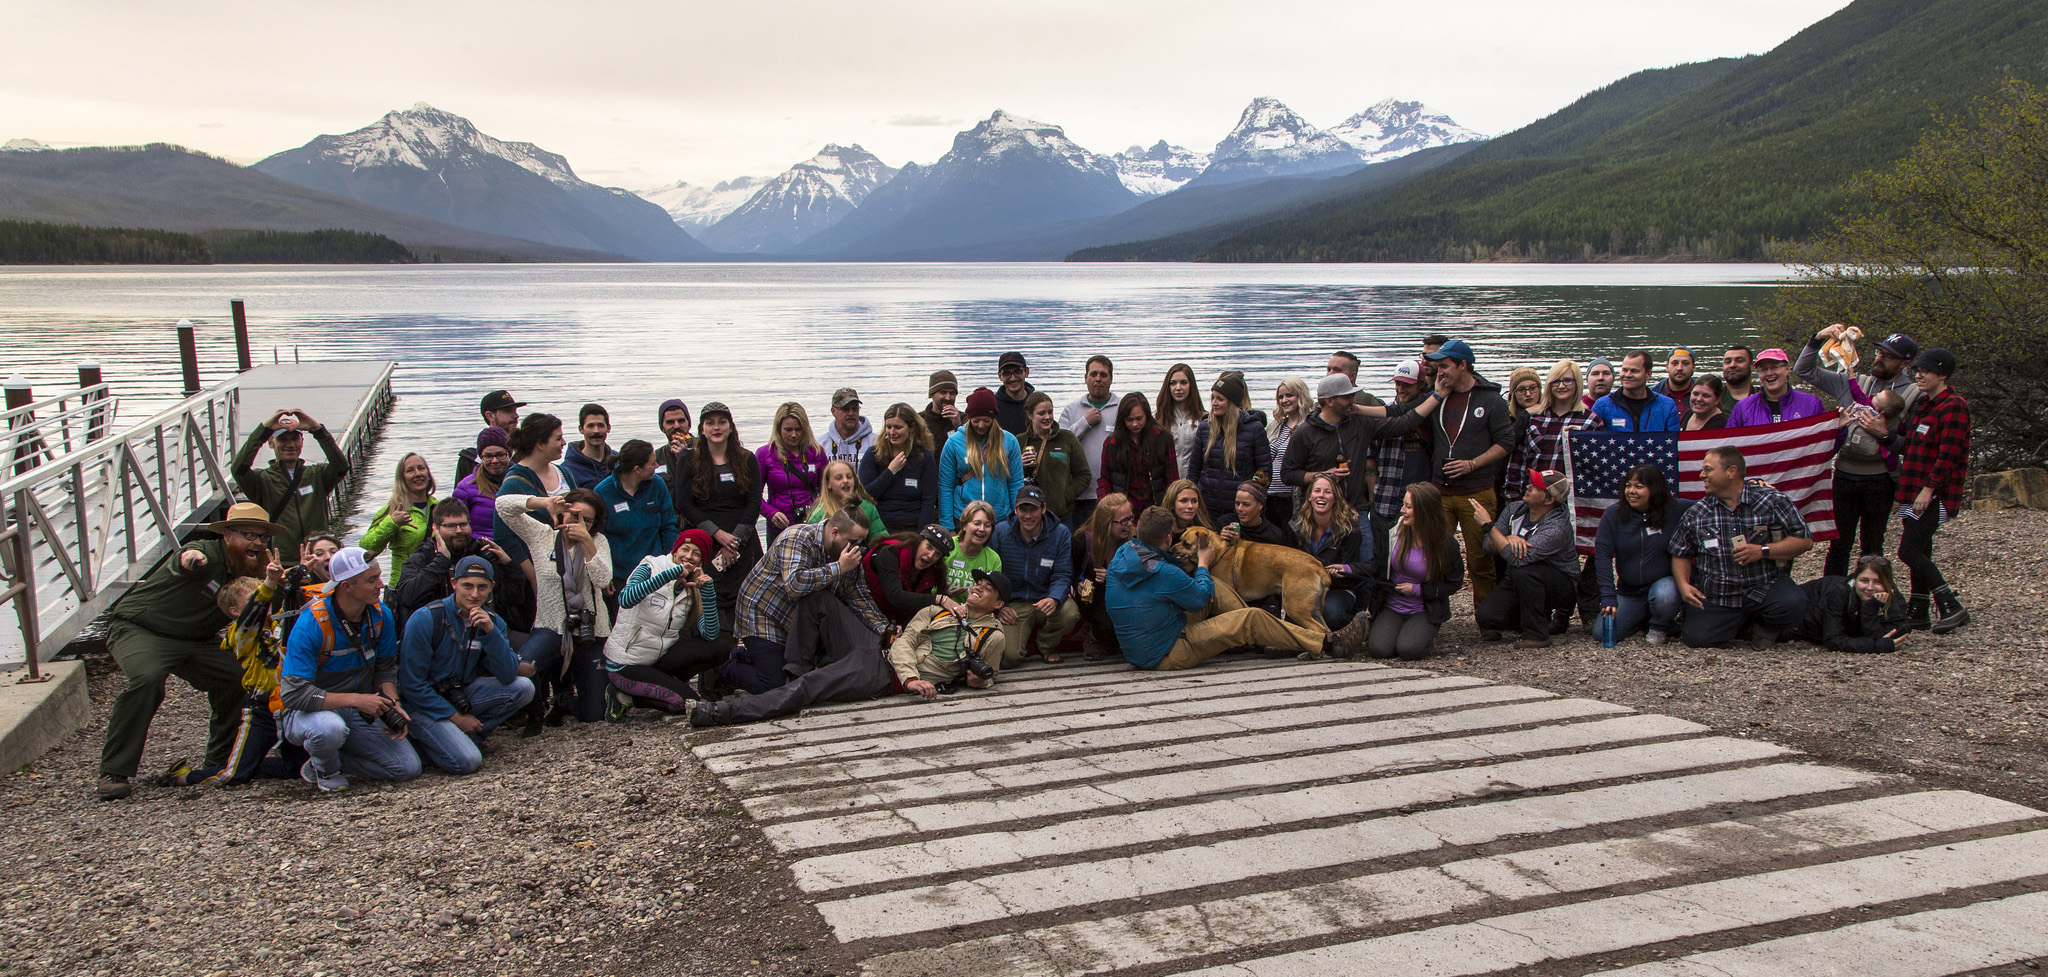 Group photo at the Apgar public boat dock